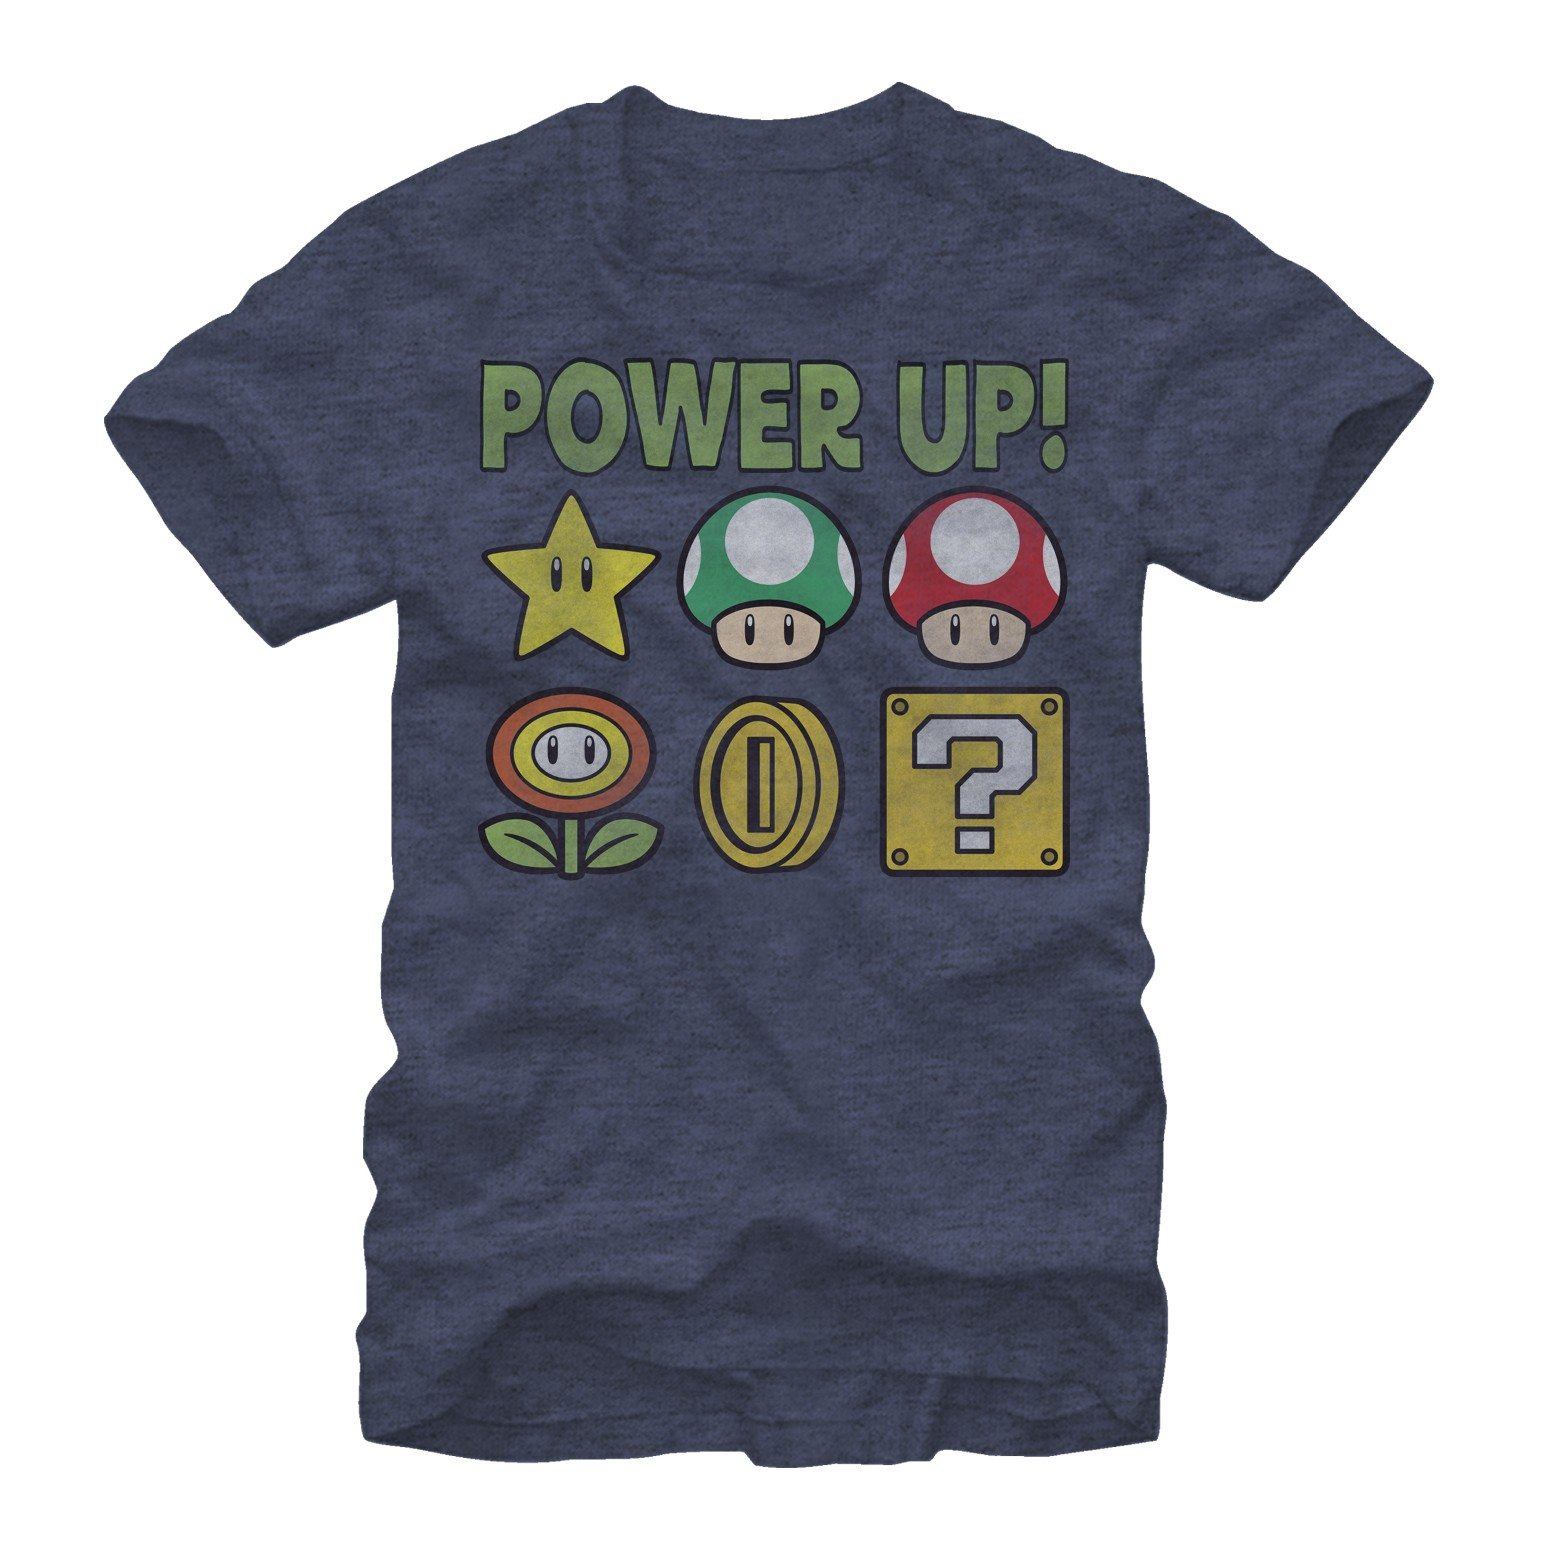 Power Up!